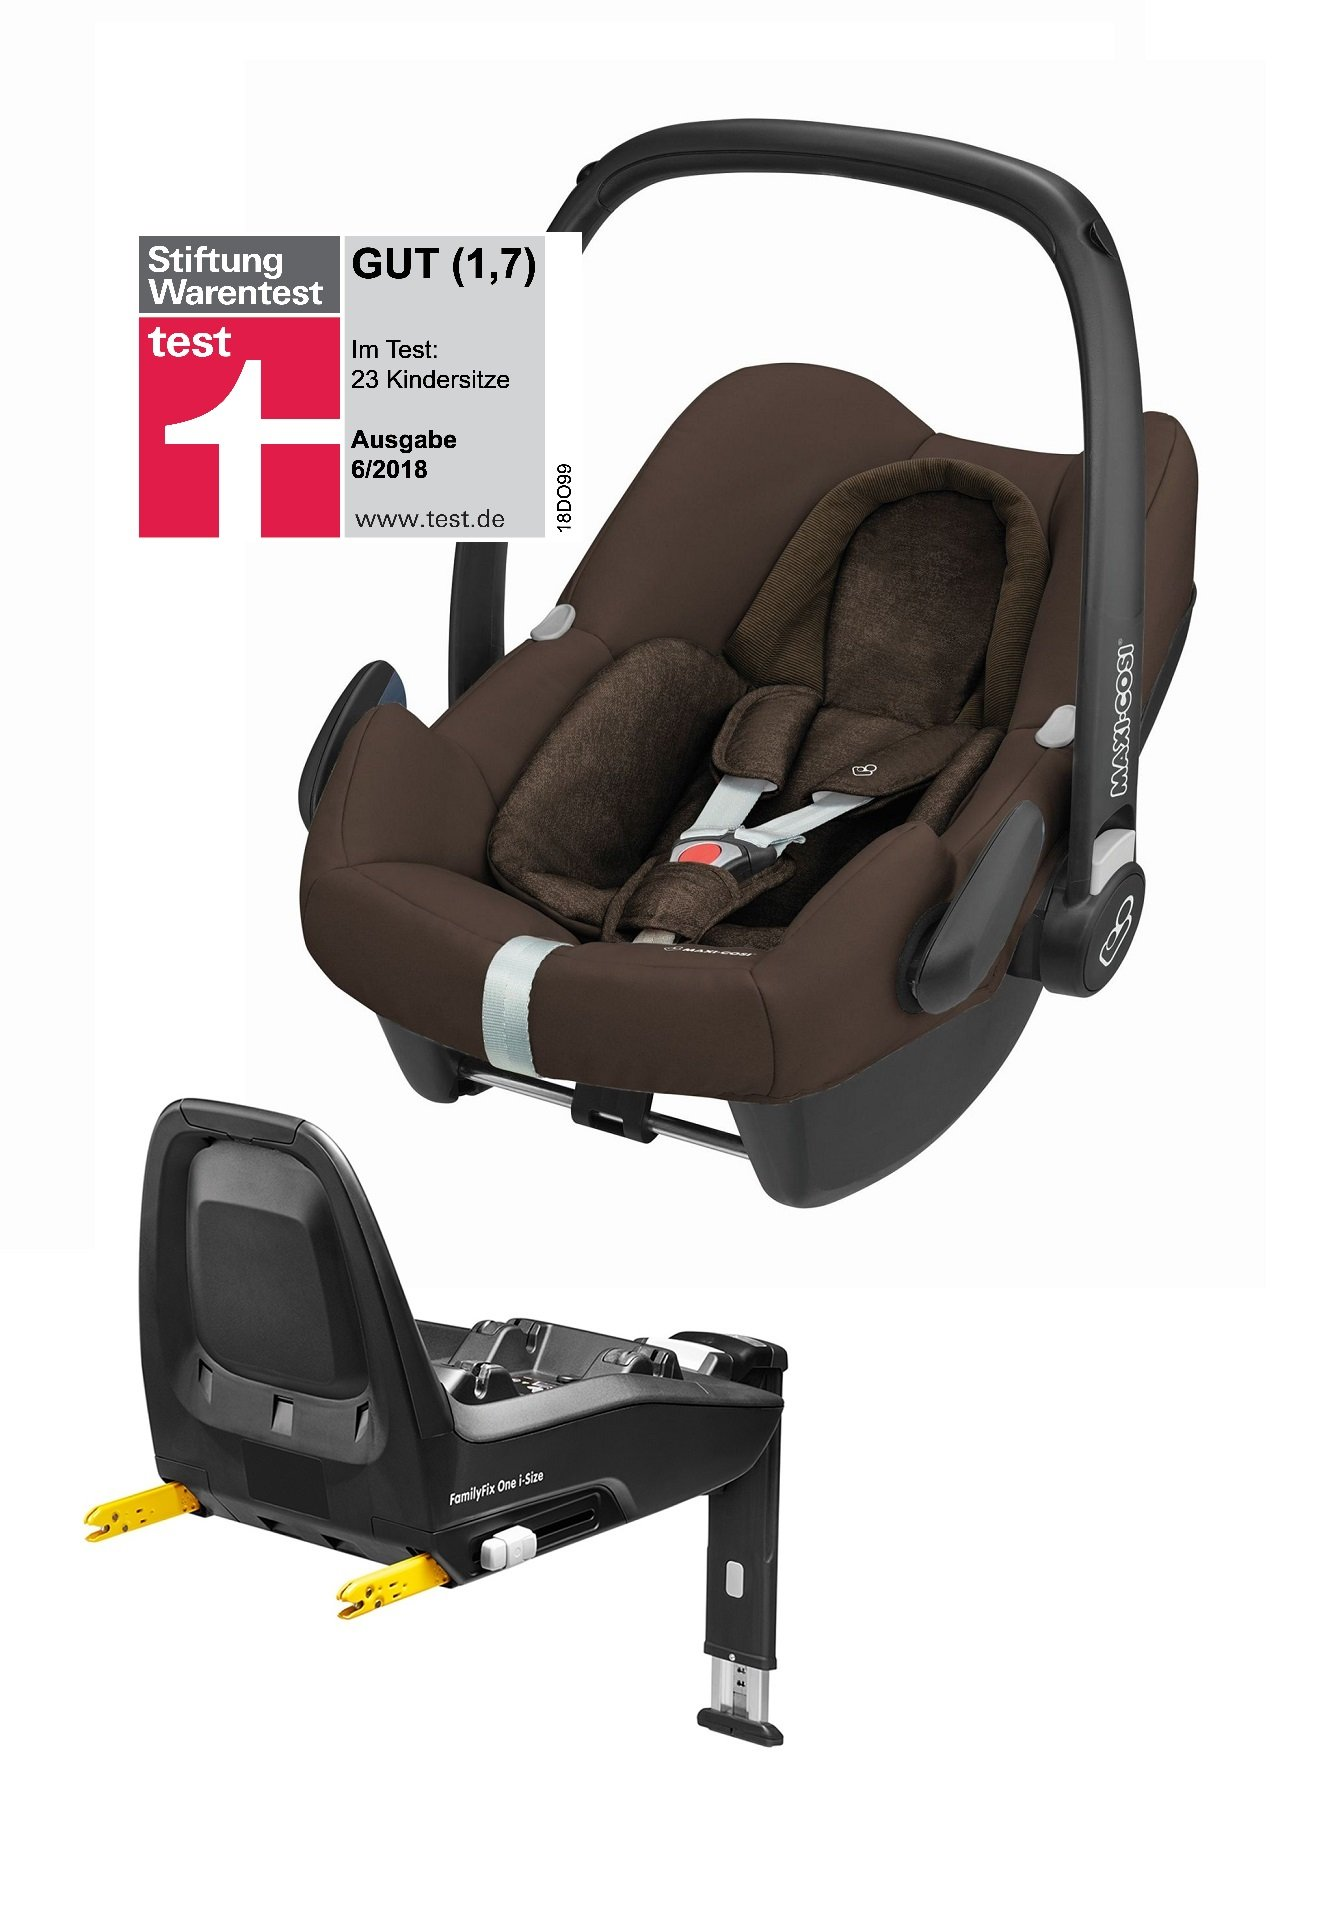 maxi cosi babyschale rock inkl familyfix one i size 2018 nomad brown buy at kidsroom car seats. Black Bedroom Furniture Sets. Home Design Ideas